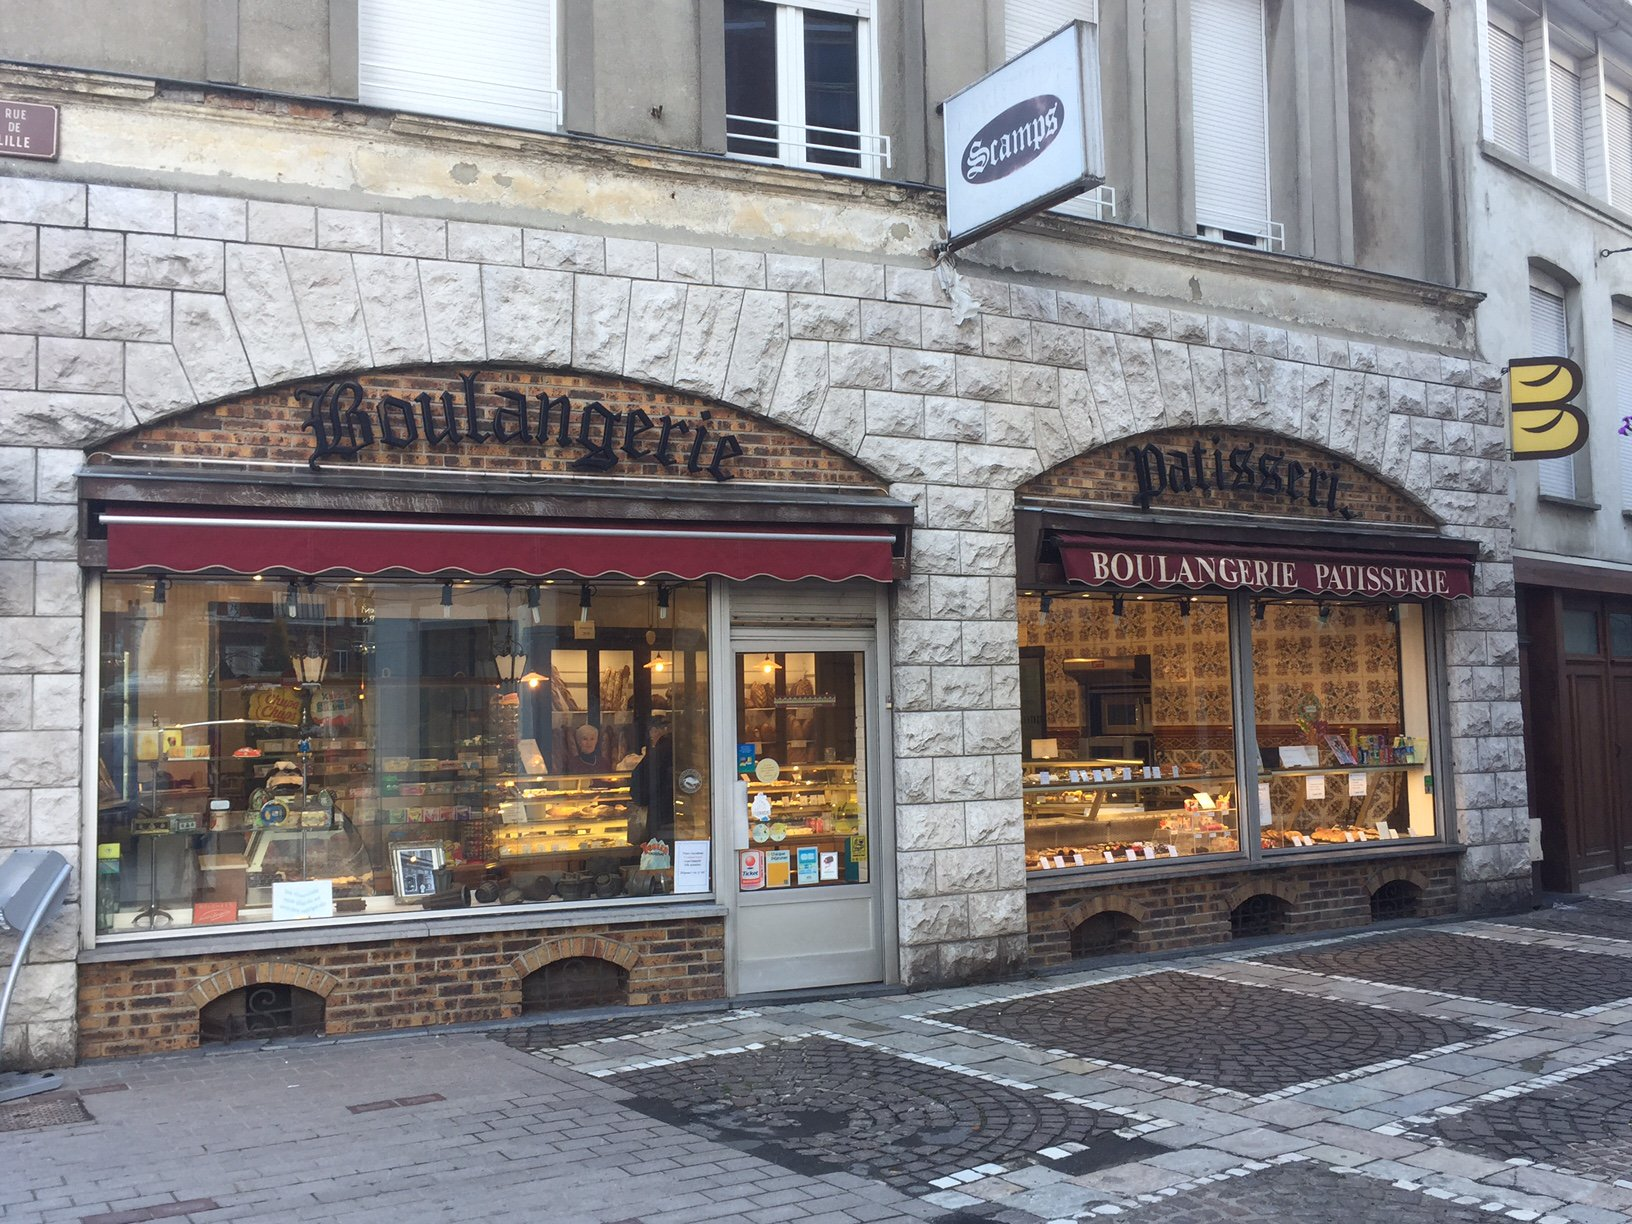 Boulangerie Pâtisserie Scamps-Tourcoing